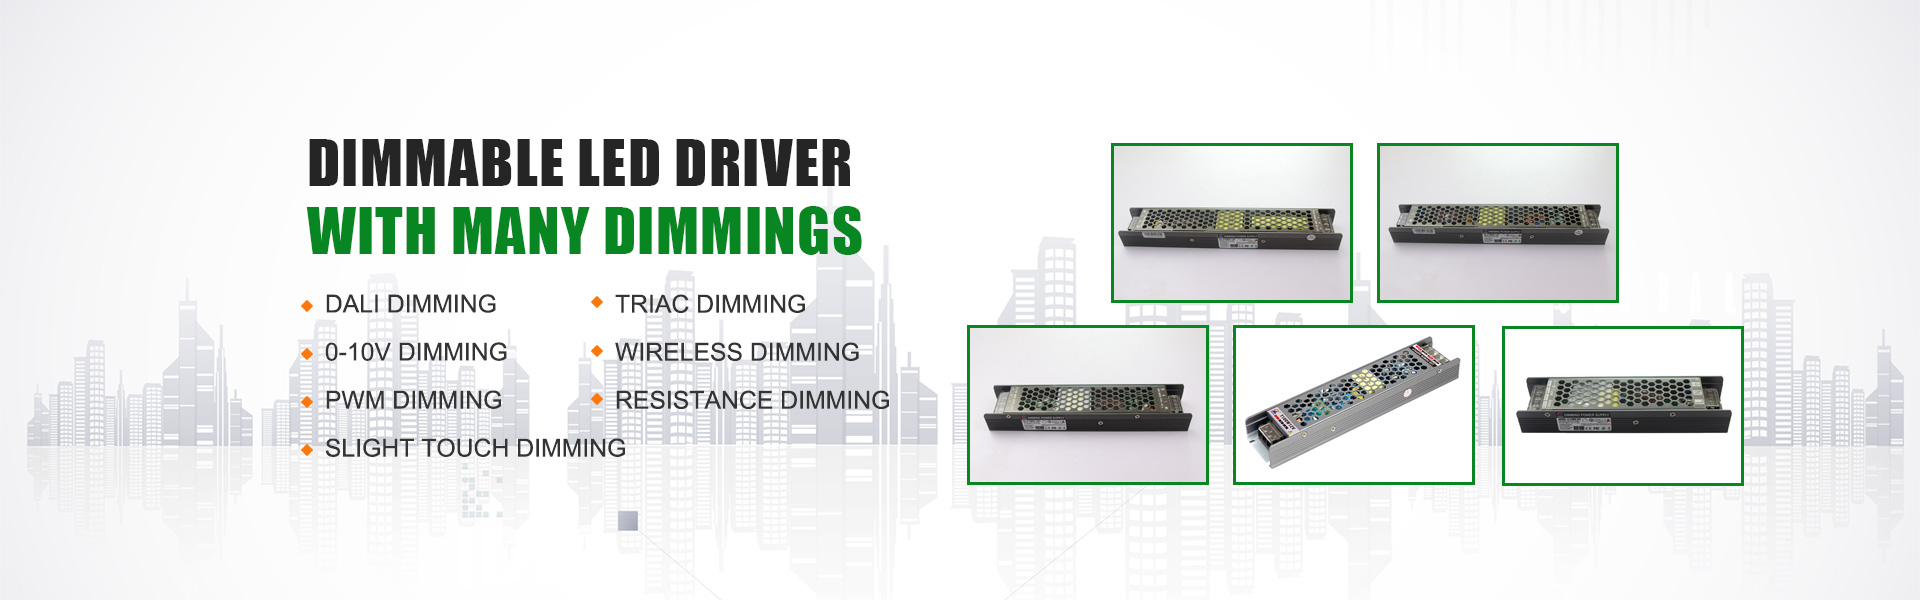 switching power supply,led driver,smps,Dongguan Chengliang Intelligent Technology Co,.Ltd